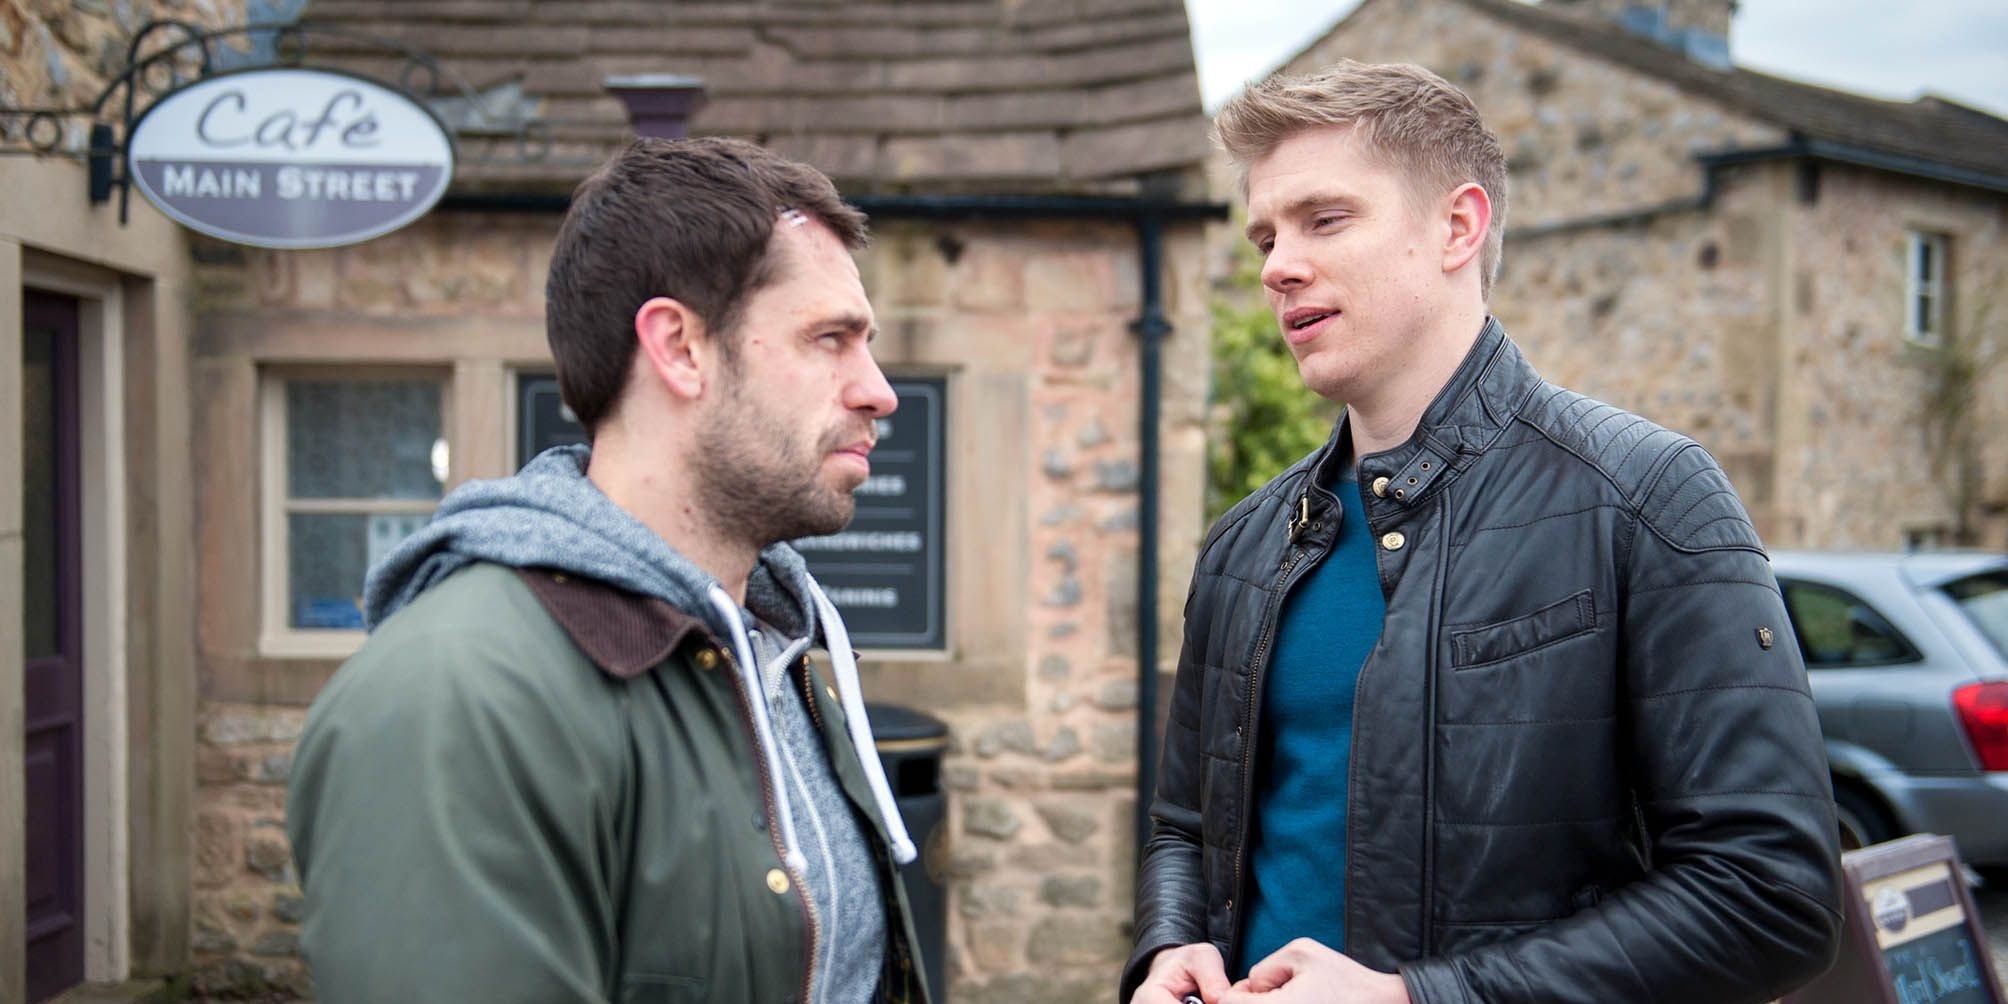 Robert is horrified to learn that Andy has been seeing Chrissie